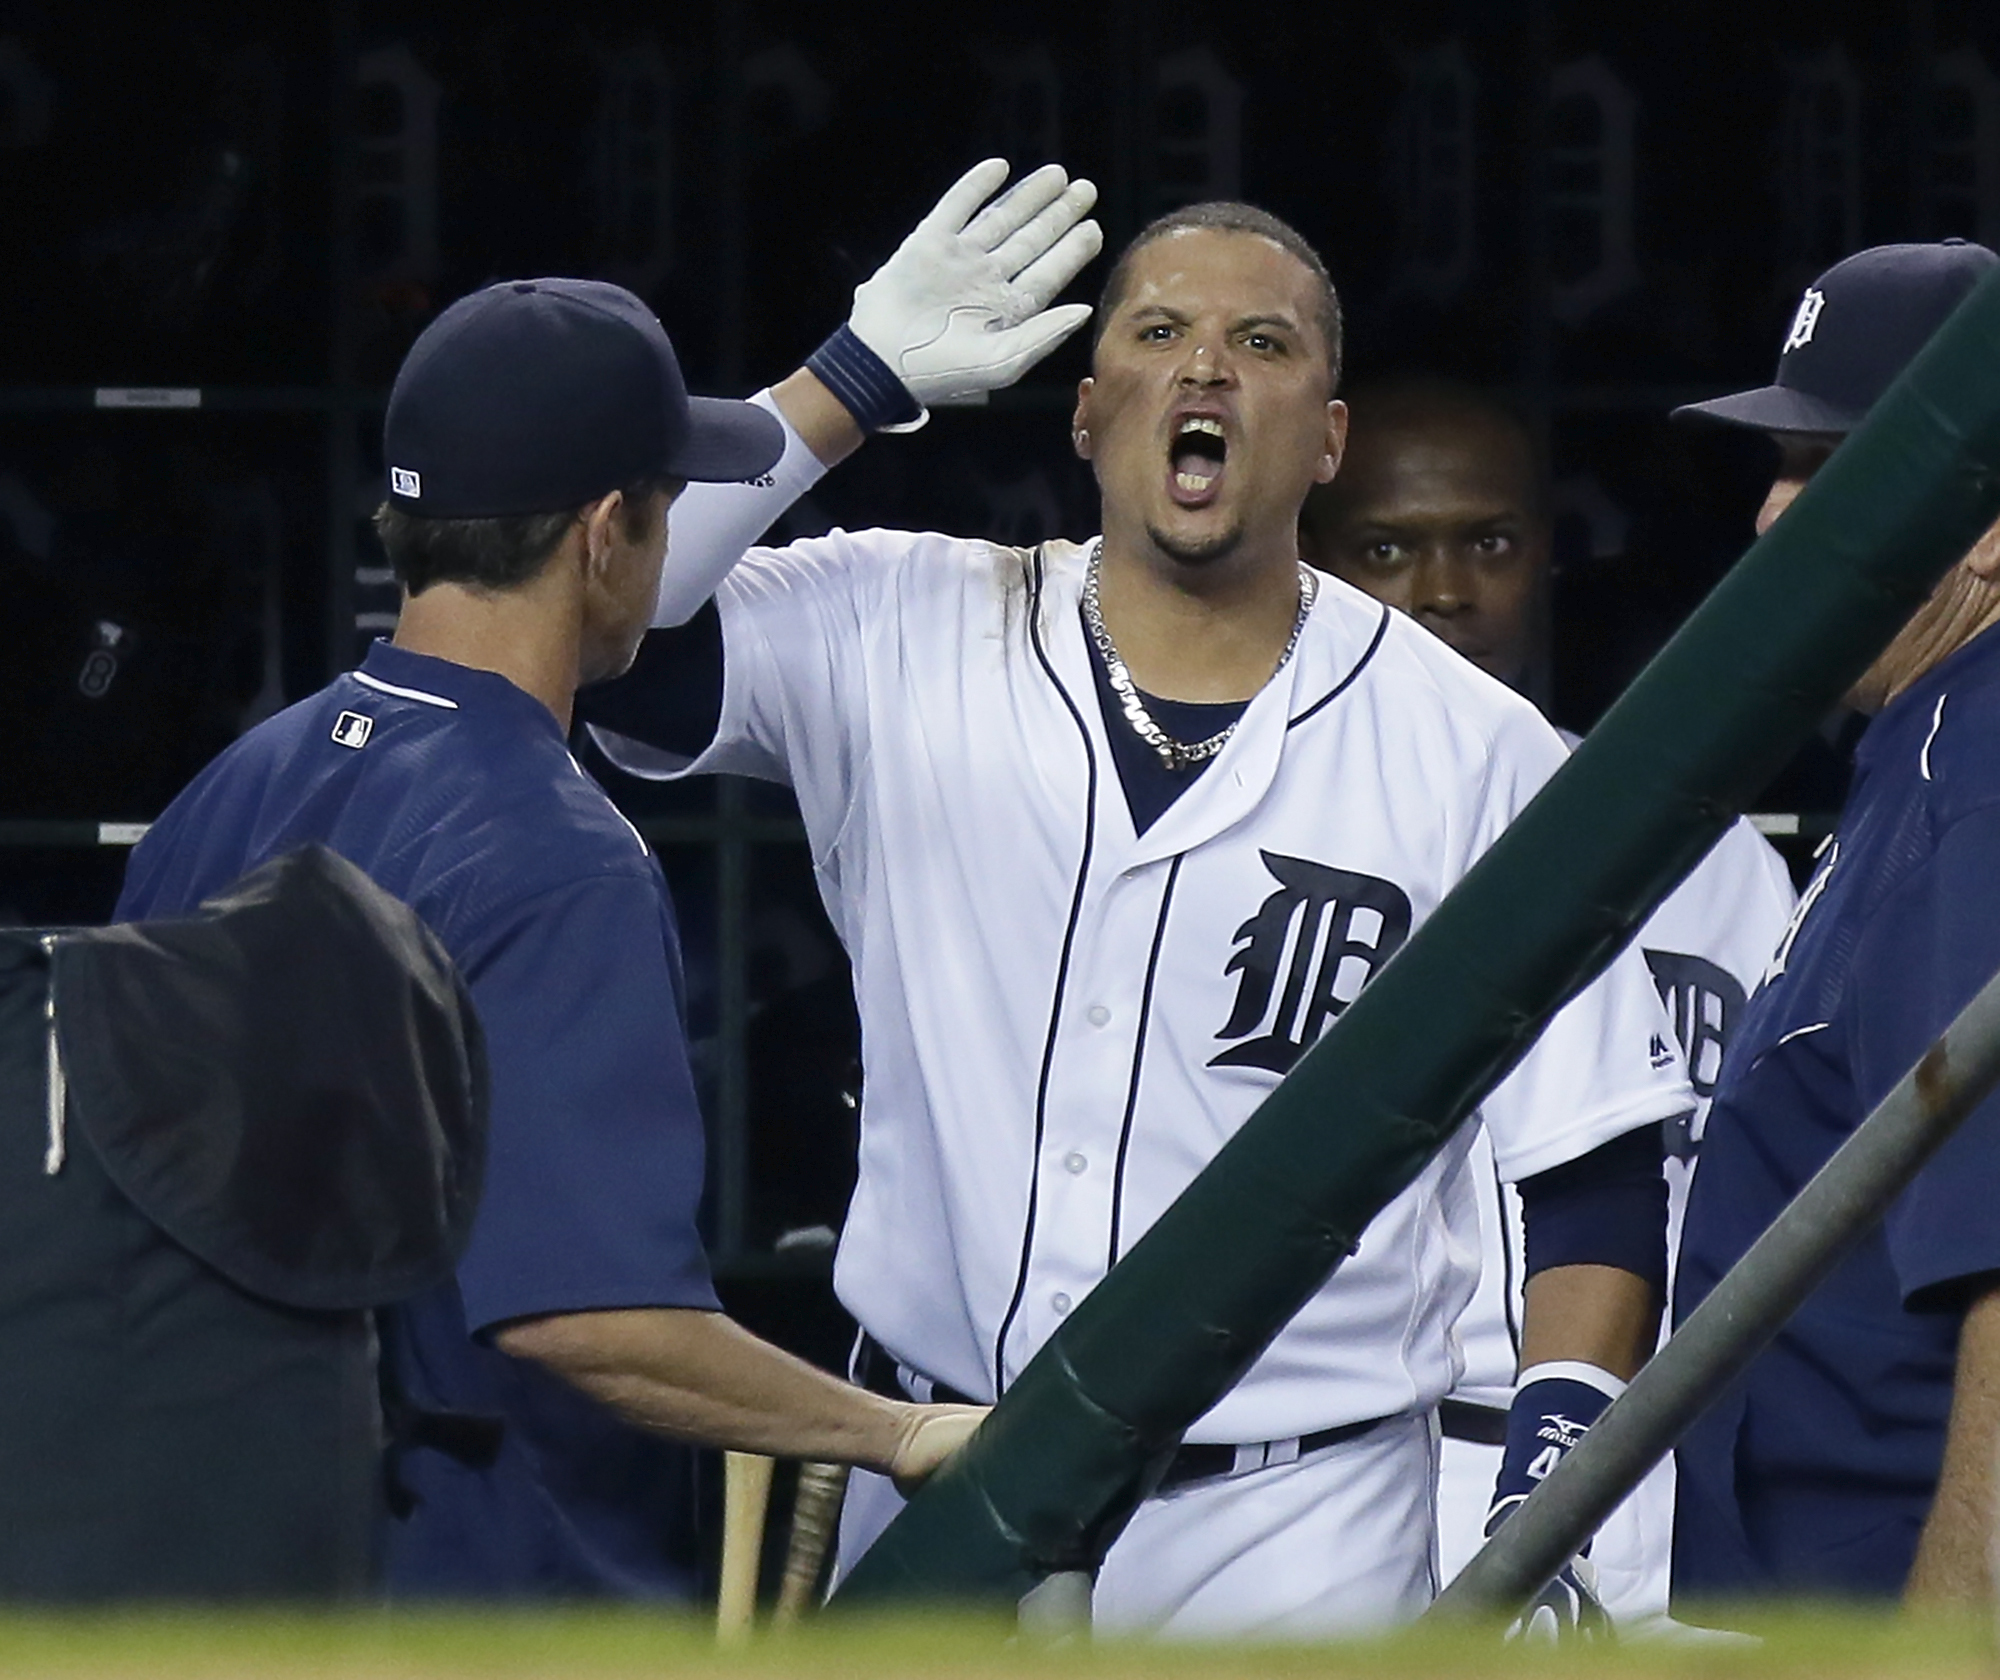 Detroit Tigers' Victor Martinez continues to yell at home plate umpire Mike Everitt following his ejection as manager Brad Ausmus, left, watches during the third inning of a baseball game against the Los Angeles Angels on Saturday, Aug. 27, 2016, in Detro